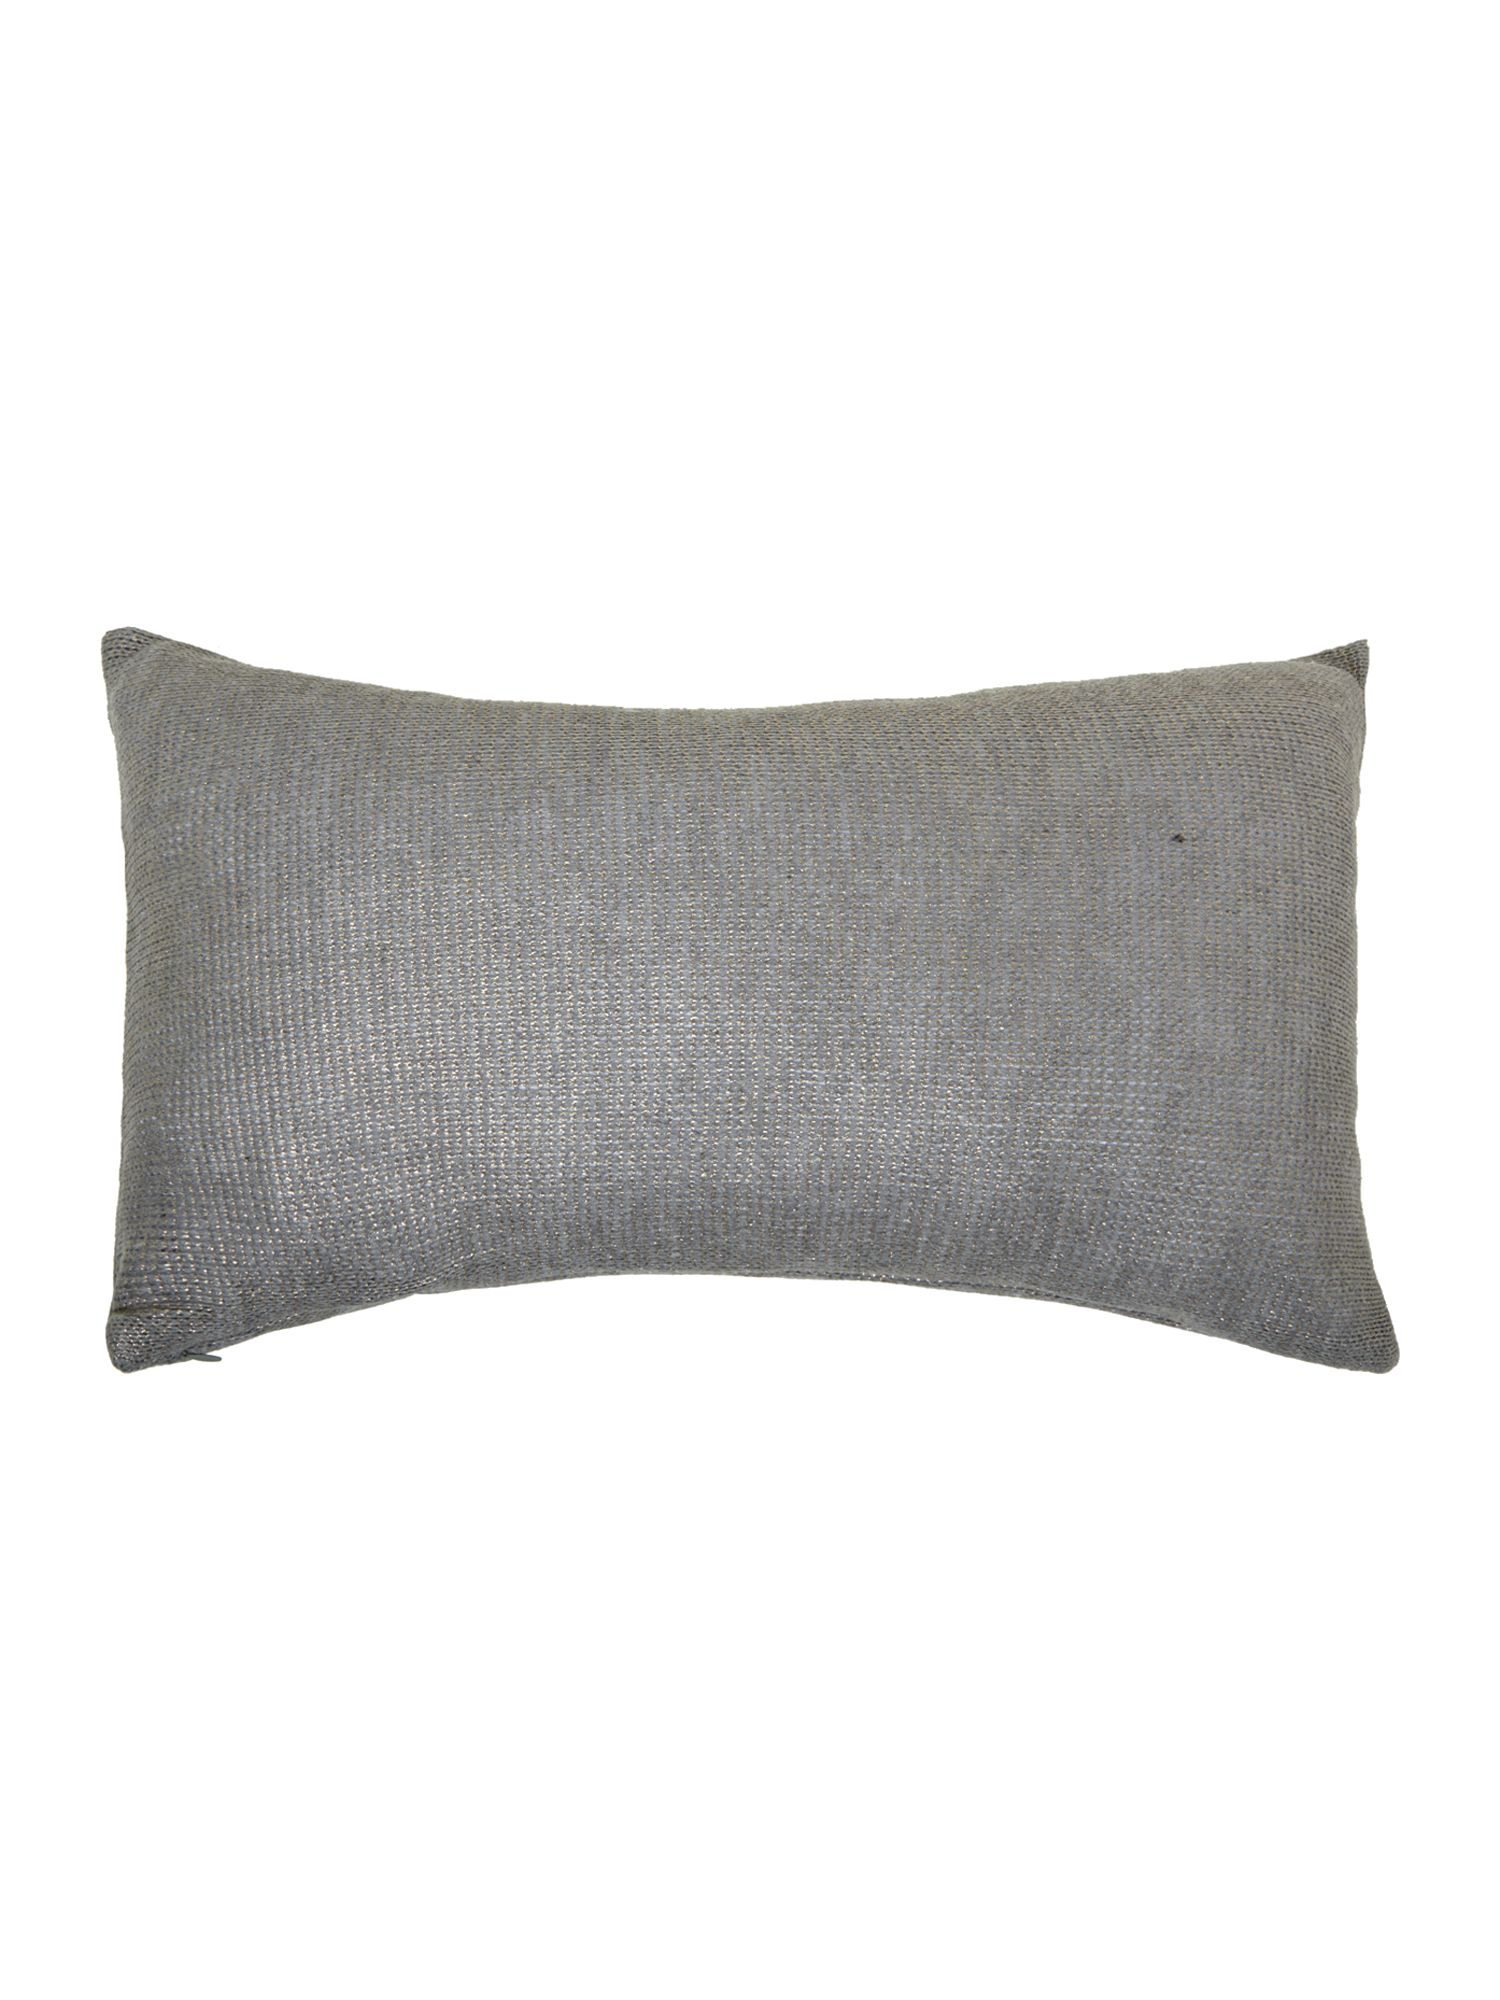 Gold foil knitted cushion